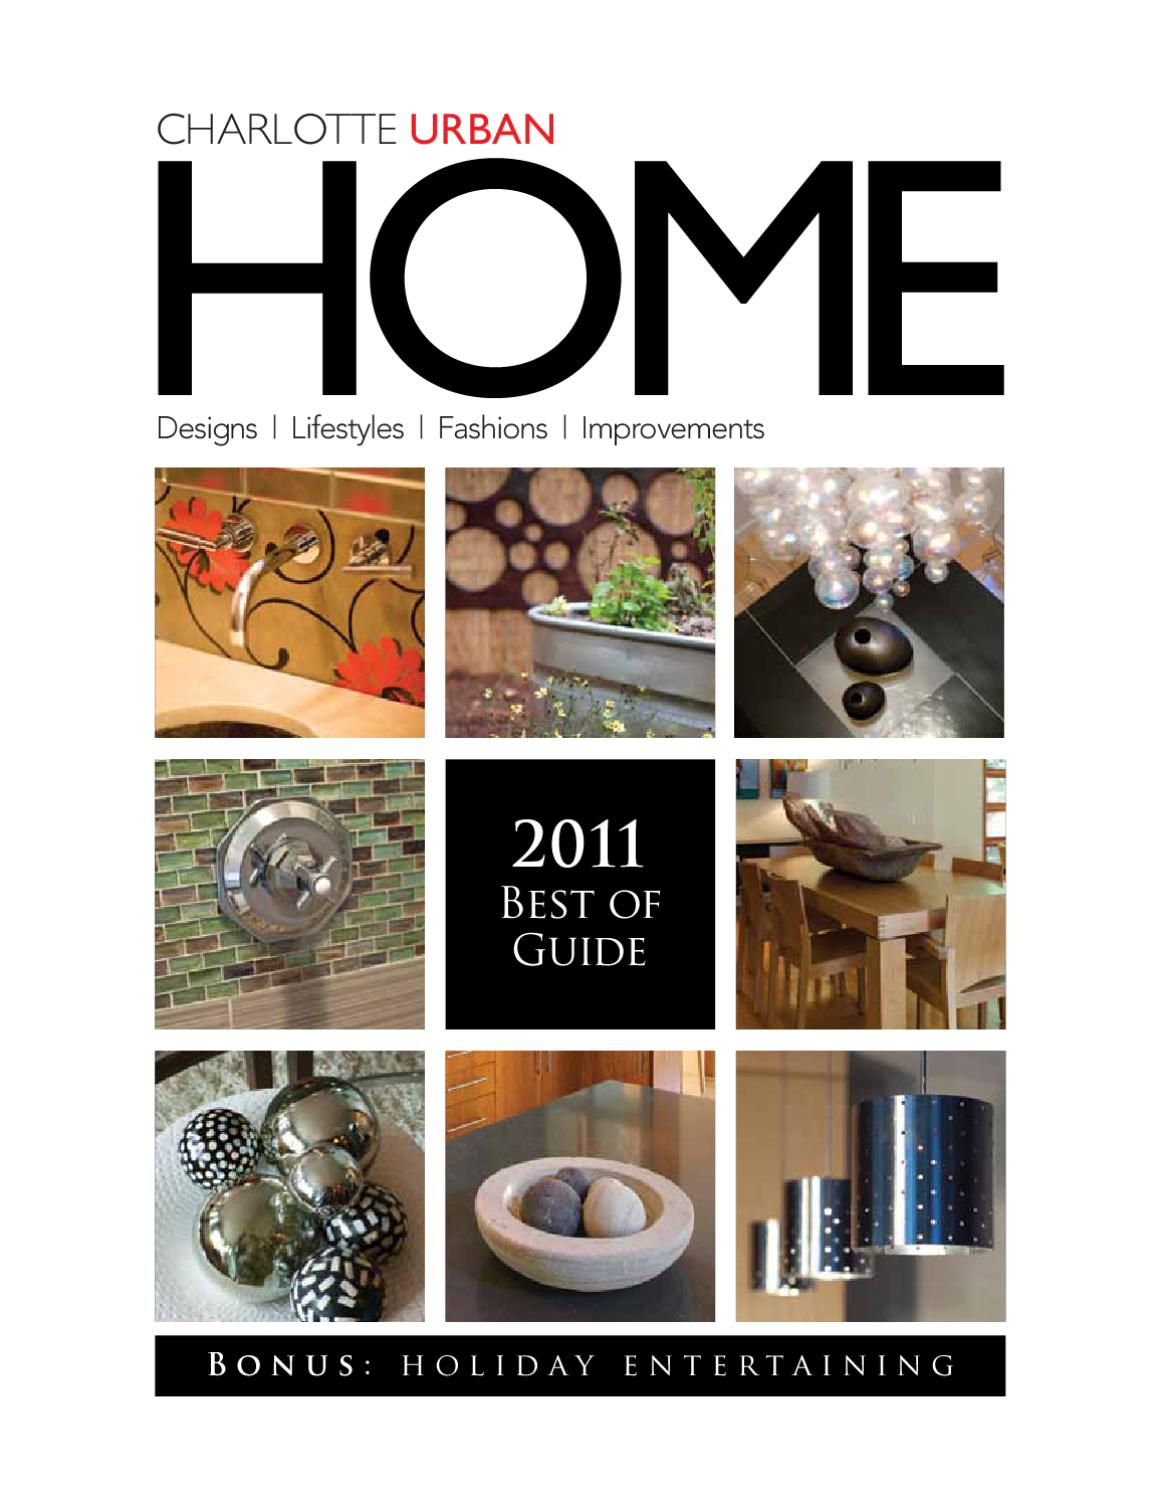 Home Design And Decor Magazine Part - 26: Best Of Guide 2011